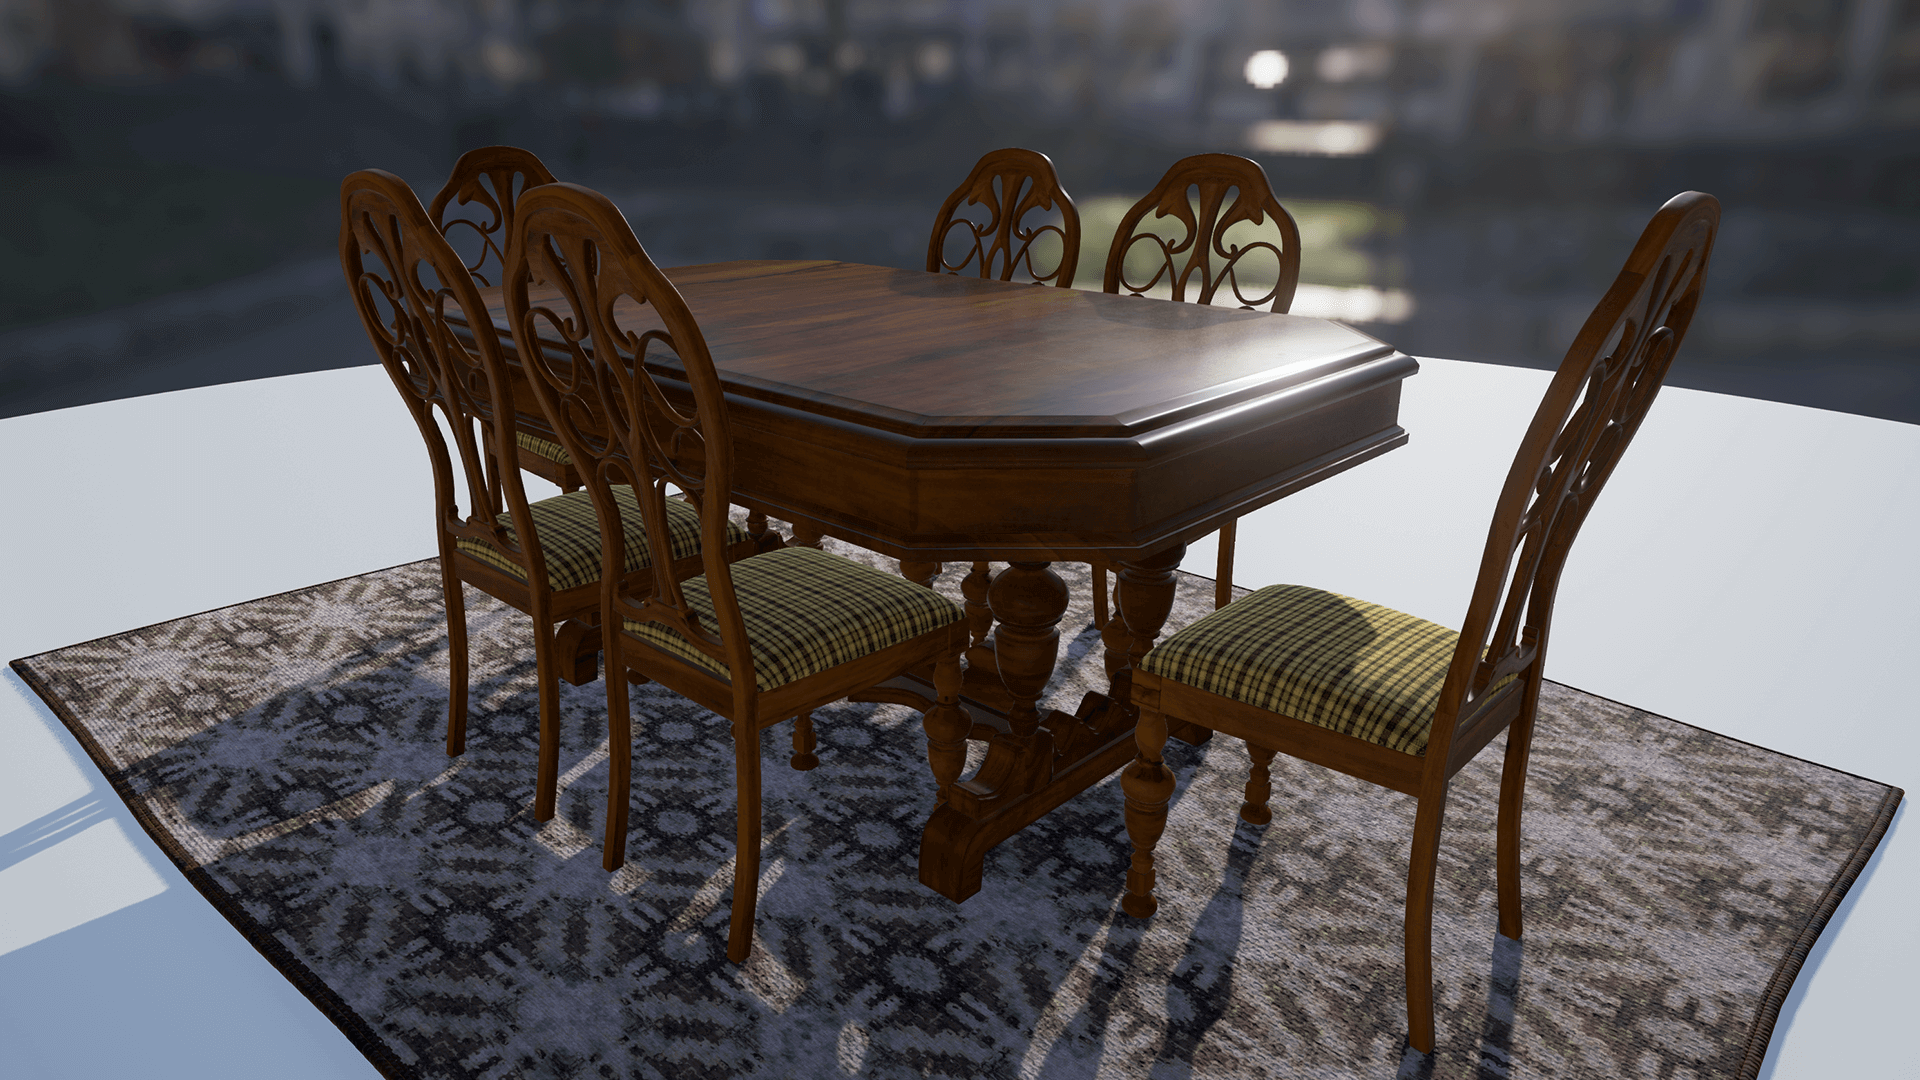 Crazy Insane Dining Sets By Tiny Little Studios In Architectural  Visualization   UE4 Marketplace